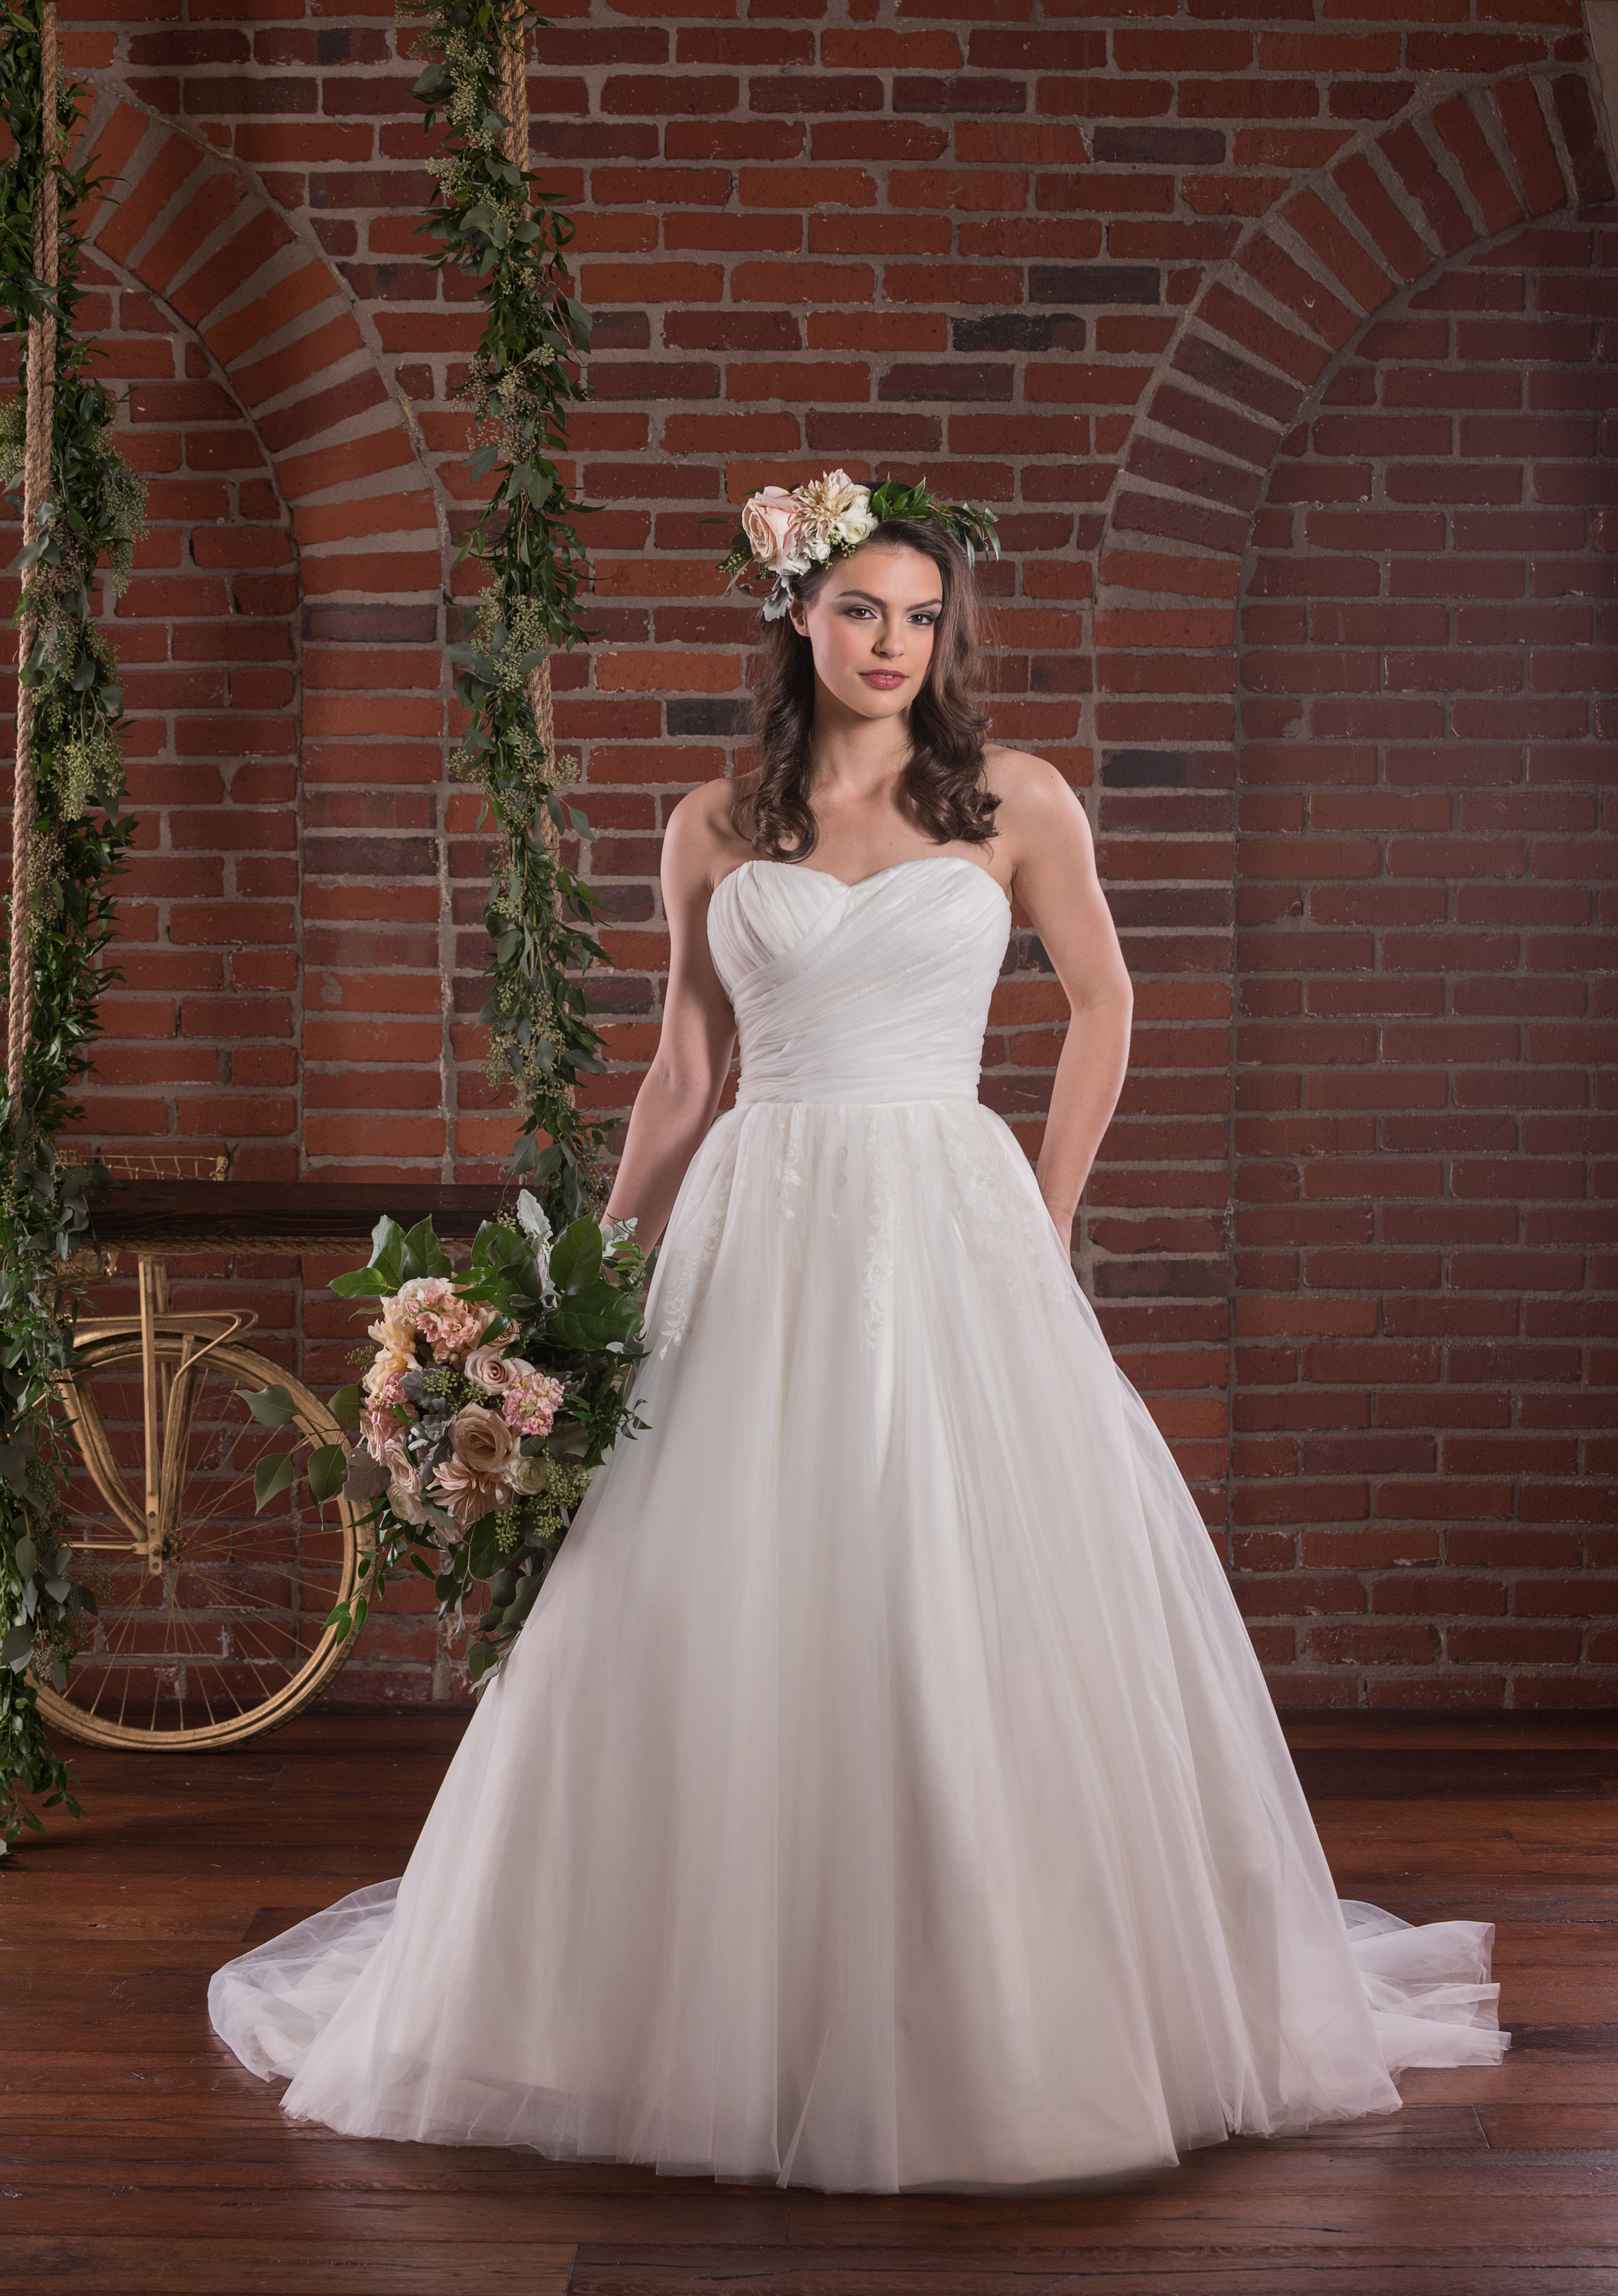 Soft rouched tulle on bodice over lace applique ball gown